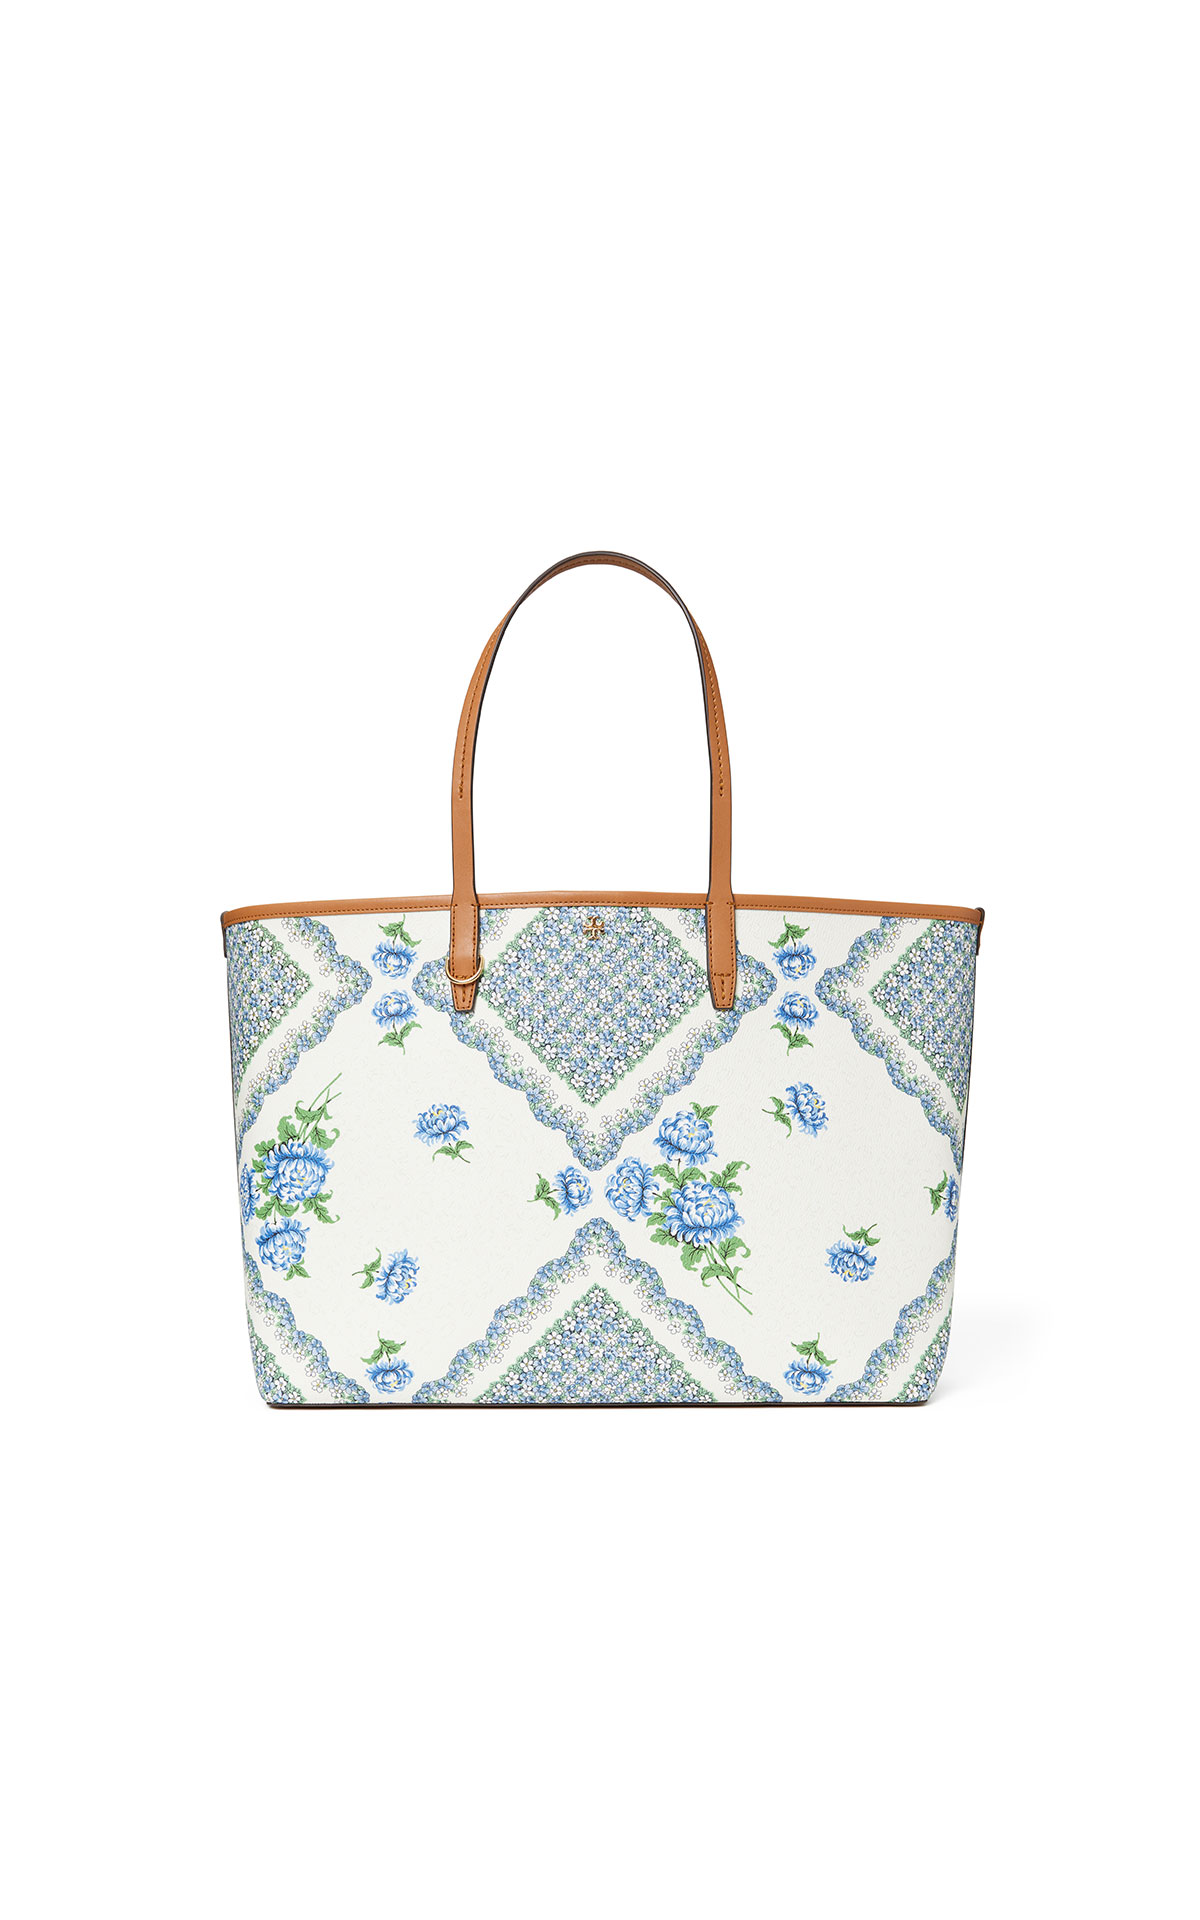 Tory Burch Emerson Daisy Applique Wristlet Zip Continent at The Bicester Village Shopping Collection